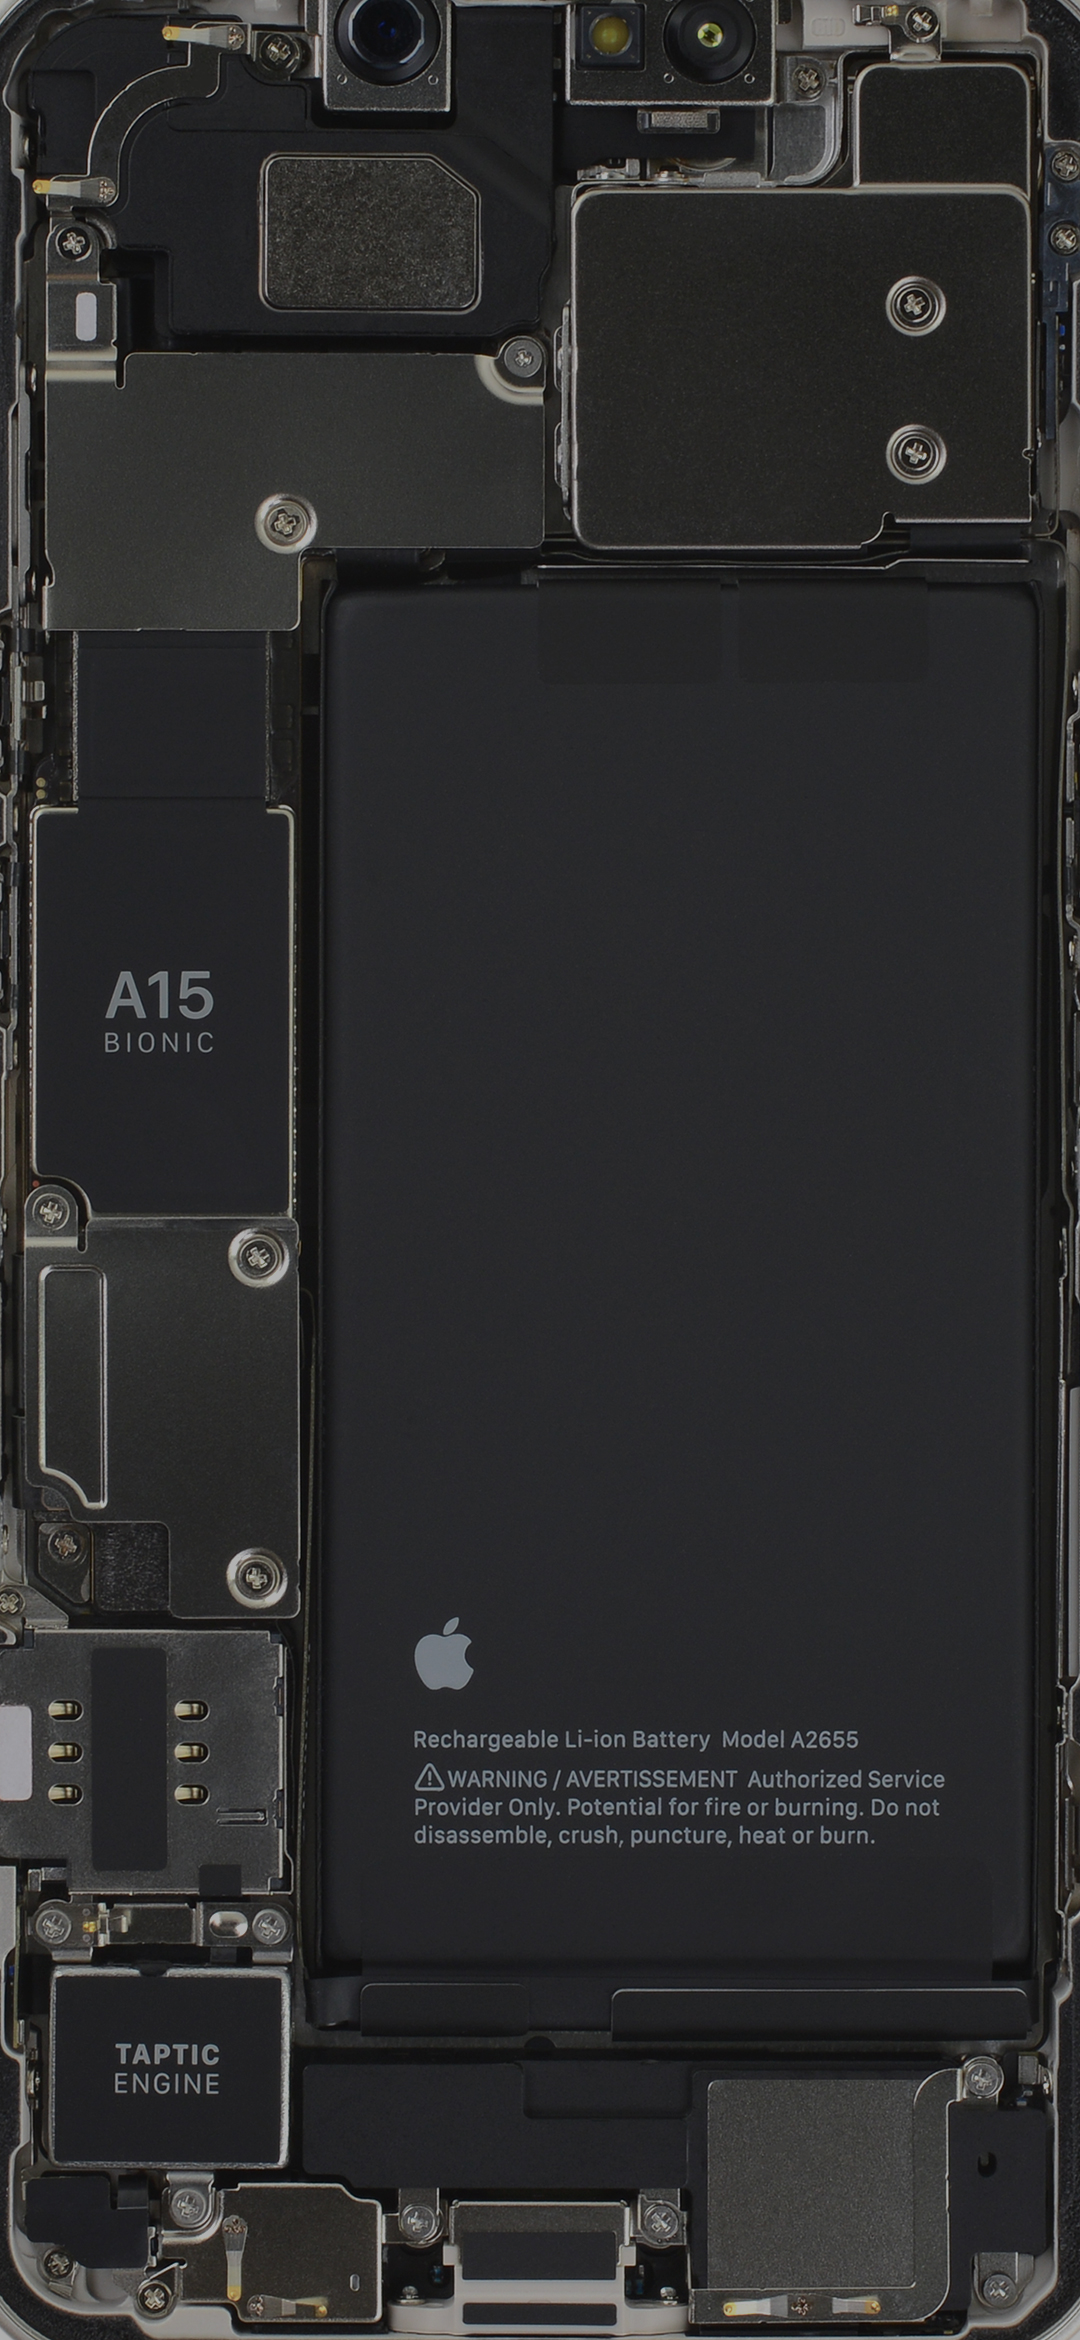 Image of the iPhone 13 showing the internals, cropped to proper wallpaper or lock screen size.